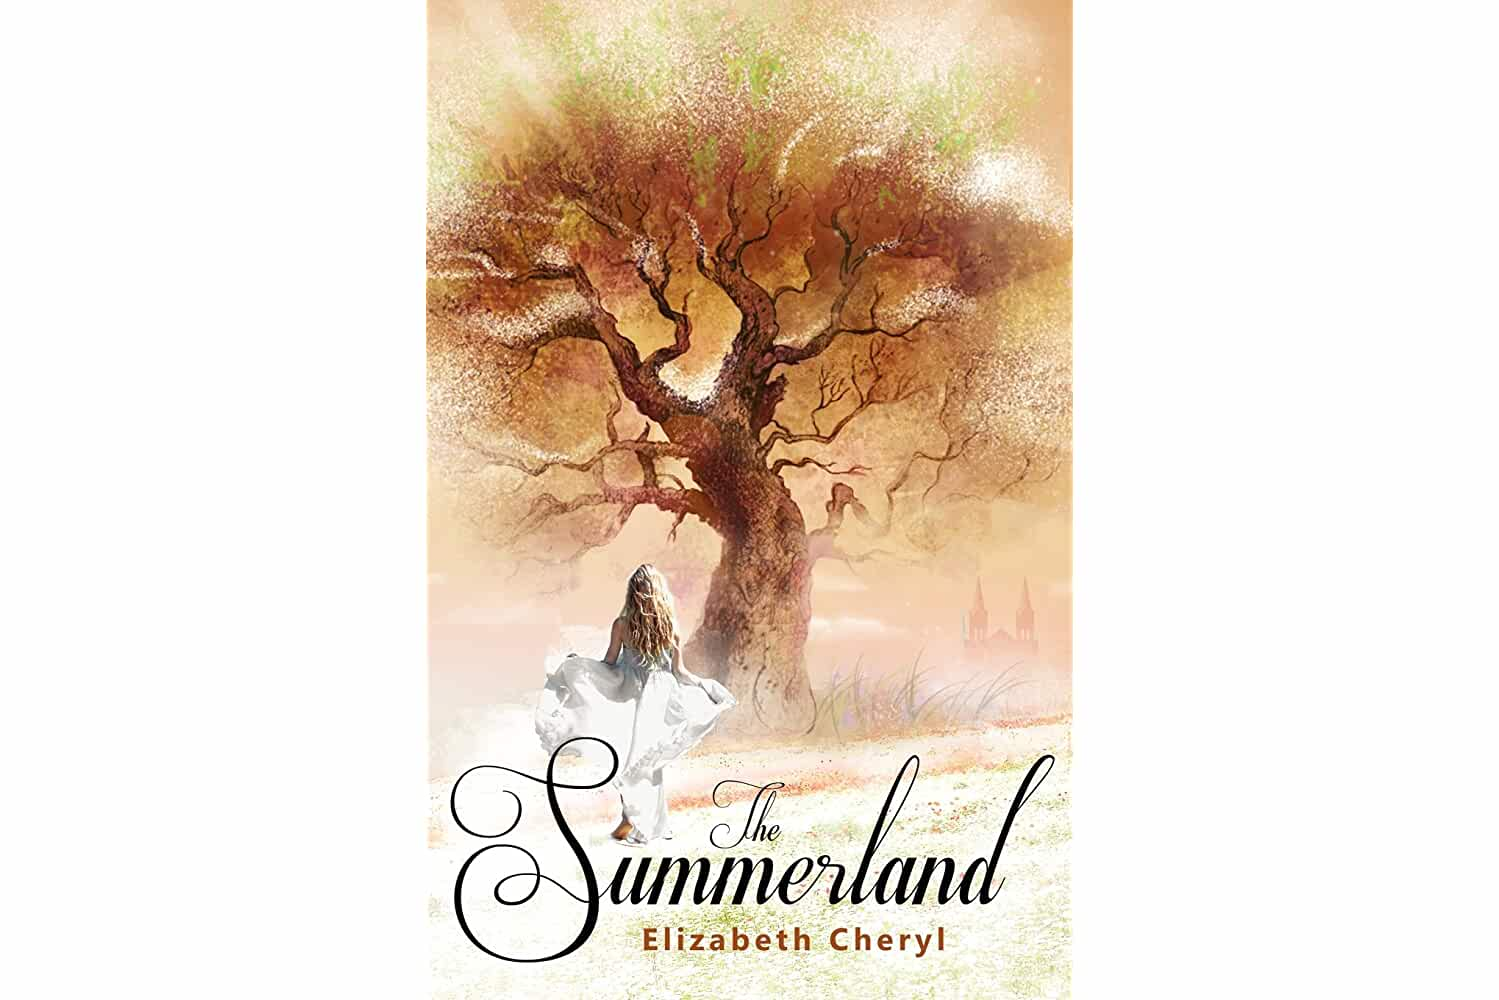 The Summerland: Blood of Virtue (2018)